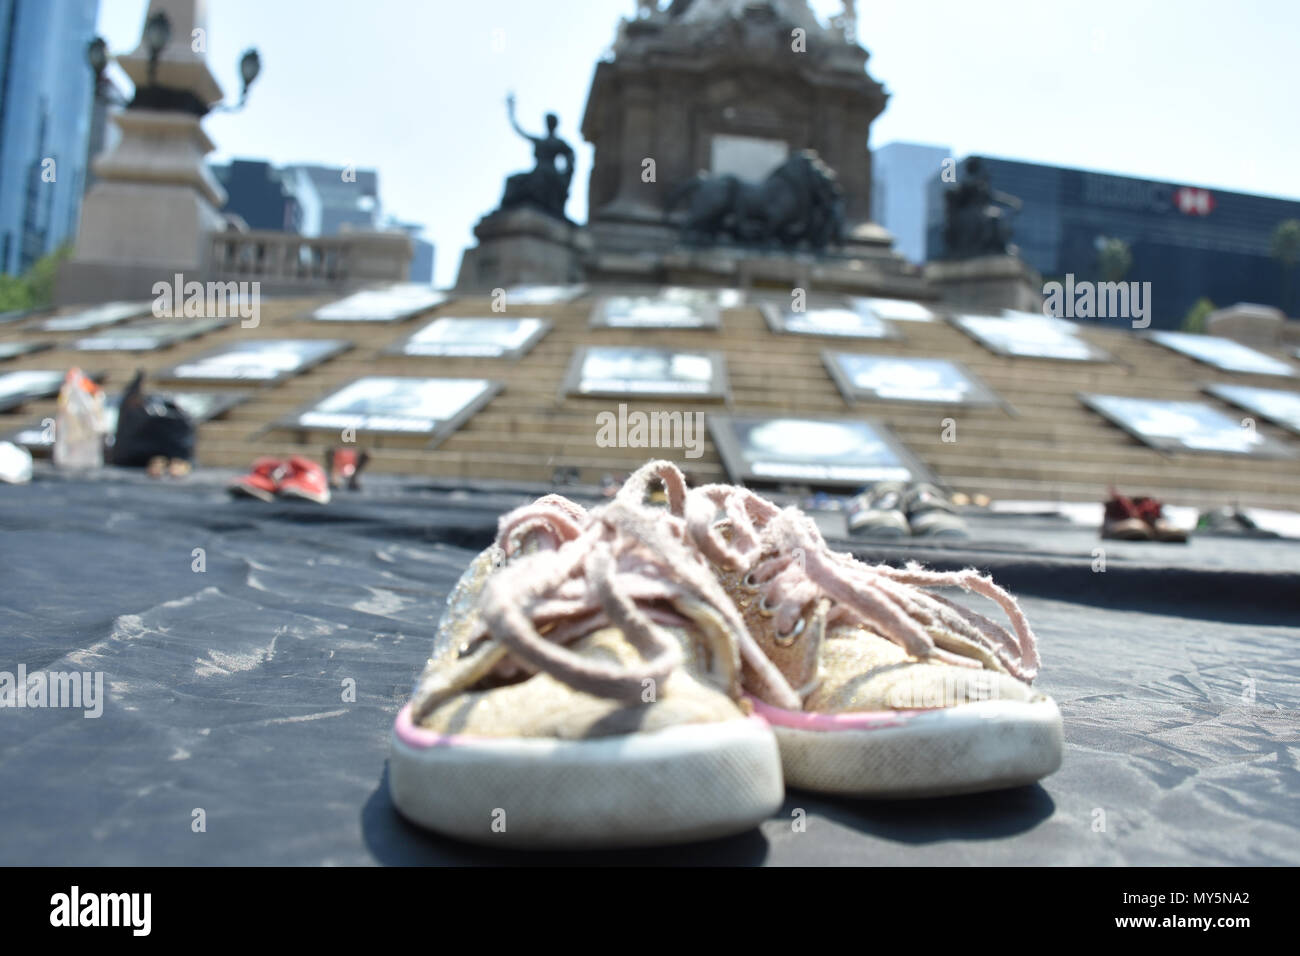 Mexico City, Mexico. 5th June, 2018. Shoes of the deceased kids are seen displayed during the 9th anniversary protest. Demonstration to the impunity and corruption of the Government during the 9 years after the tragedy on 05, June 2009. 25 little girls and 24 little boys died as a result of a fire in the ABC Nursery in Hermosillo, Sonora. Eduardo Bours was the governor. Credit: Carlos Tischler/SOPA Images/ZUMA Wire/Alamy Live News Stock Photo